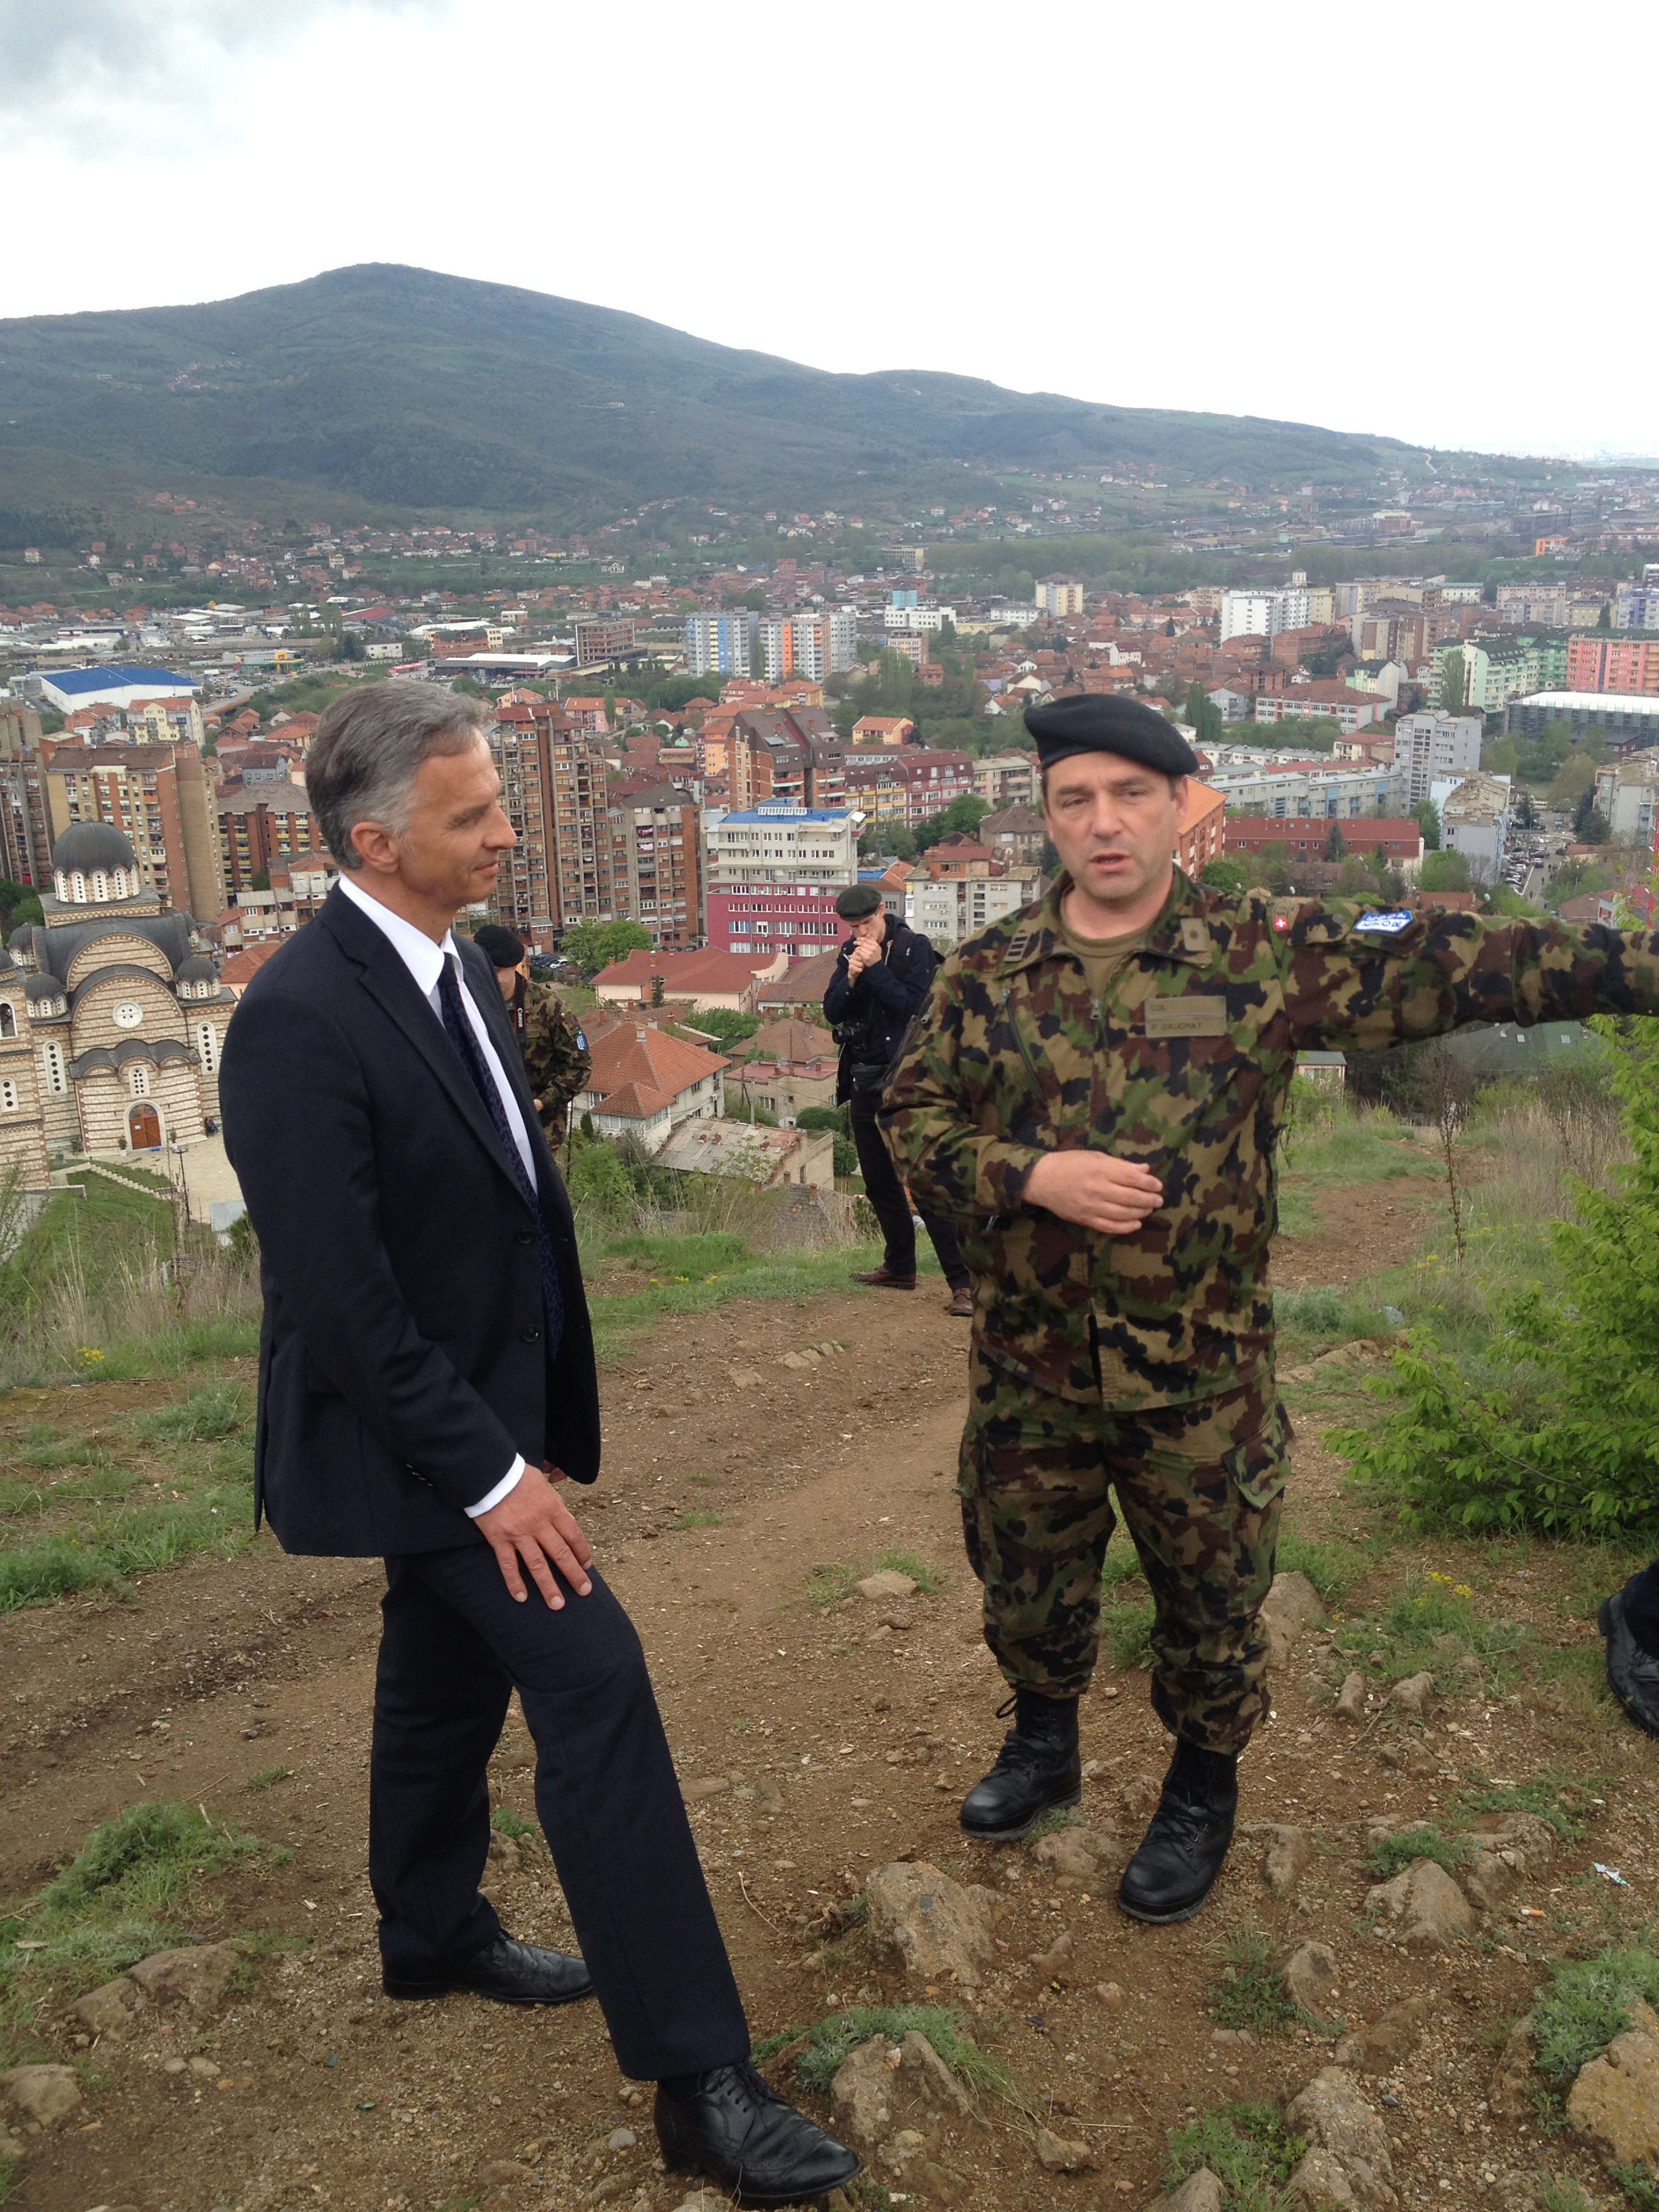 President of the Confederation Didier Burkhalter and Colonel Patrick Gauchat speak about the activities of Swisscoy in Northern Kosovo